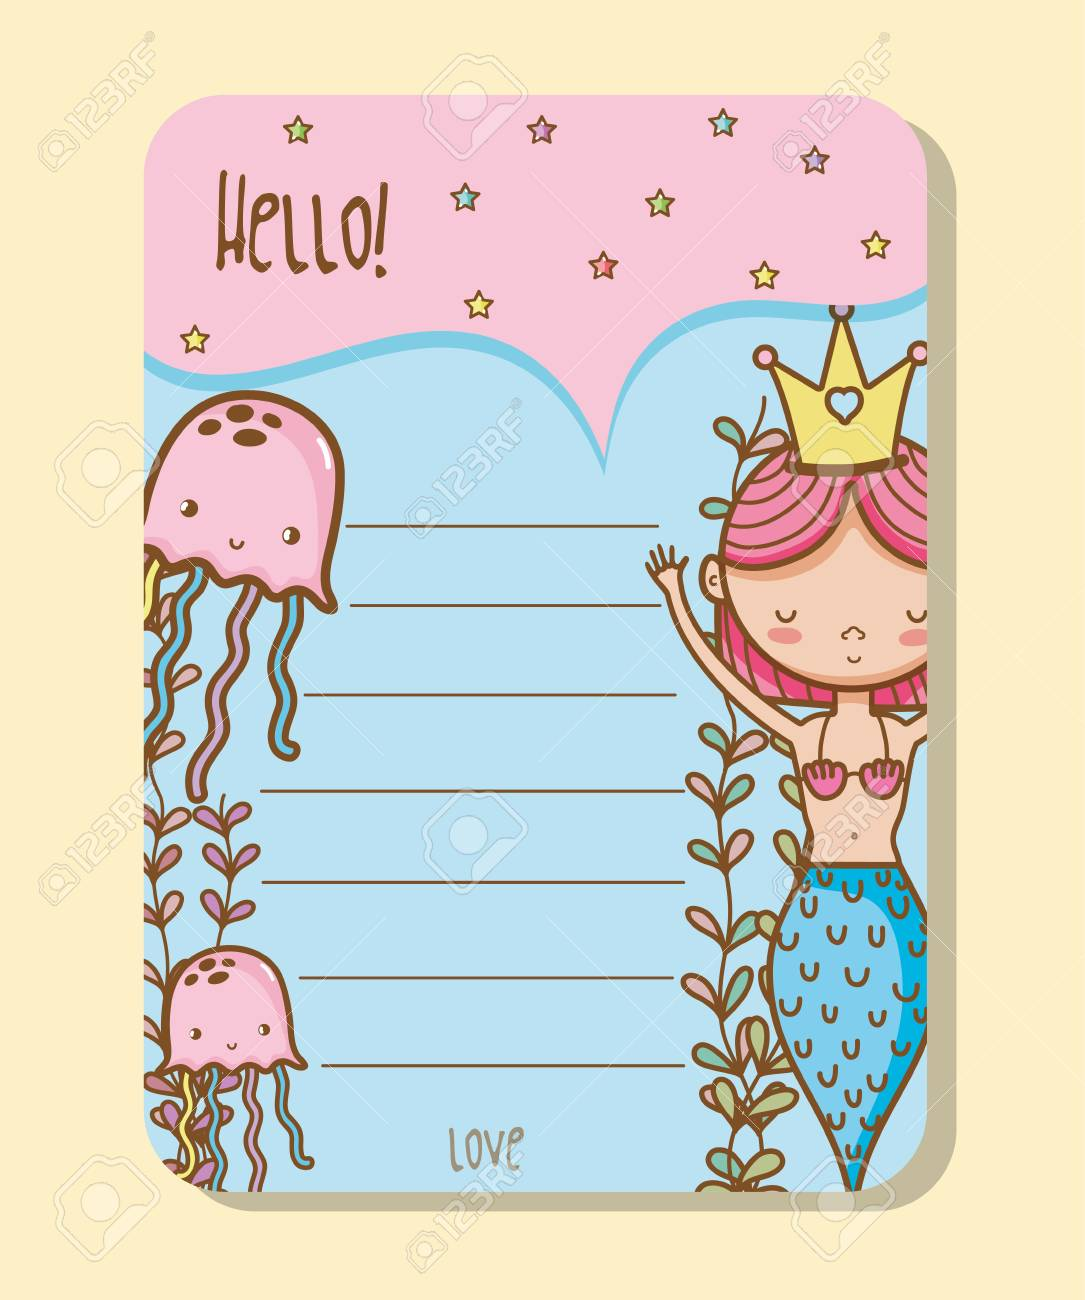 Colorful Printable Sheets With Mermaid Princess And Jellyfishes ...